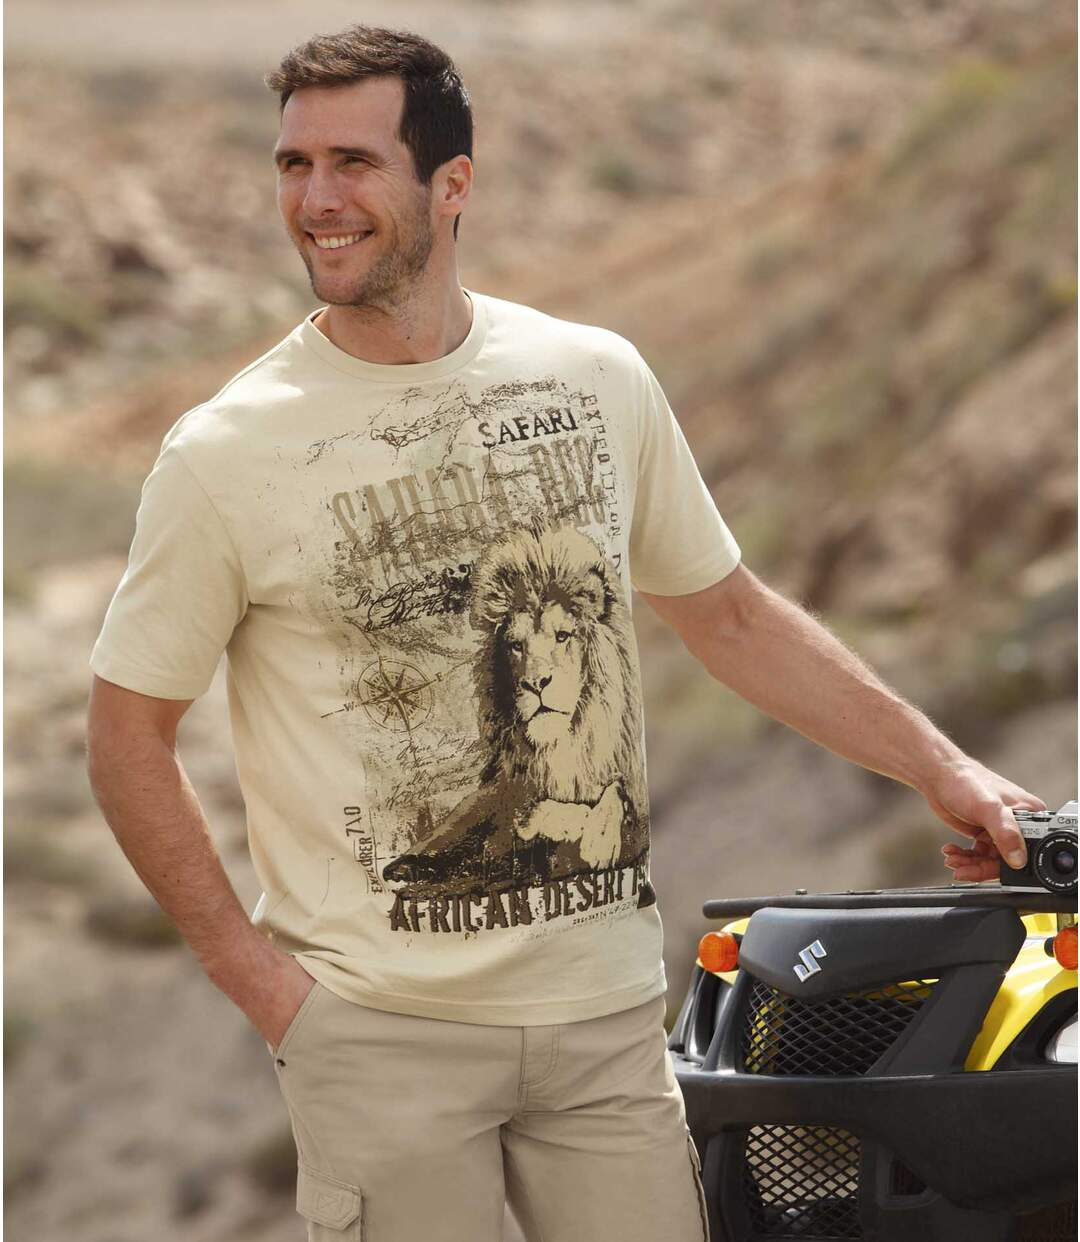 Safari Trip T-shirt